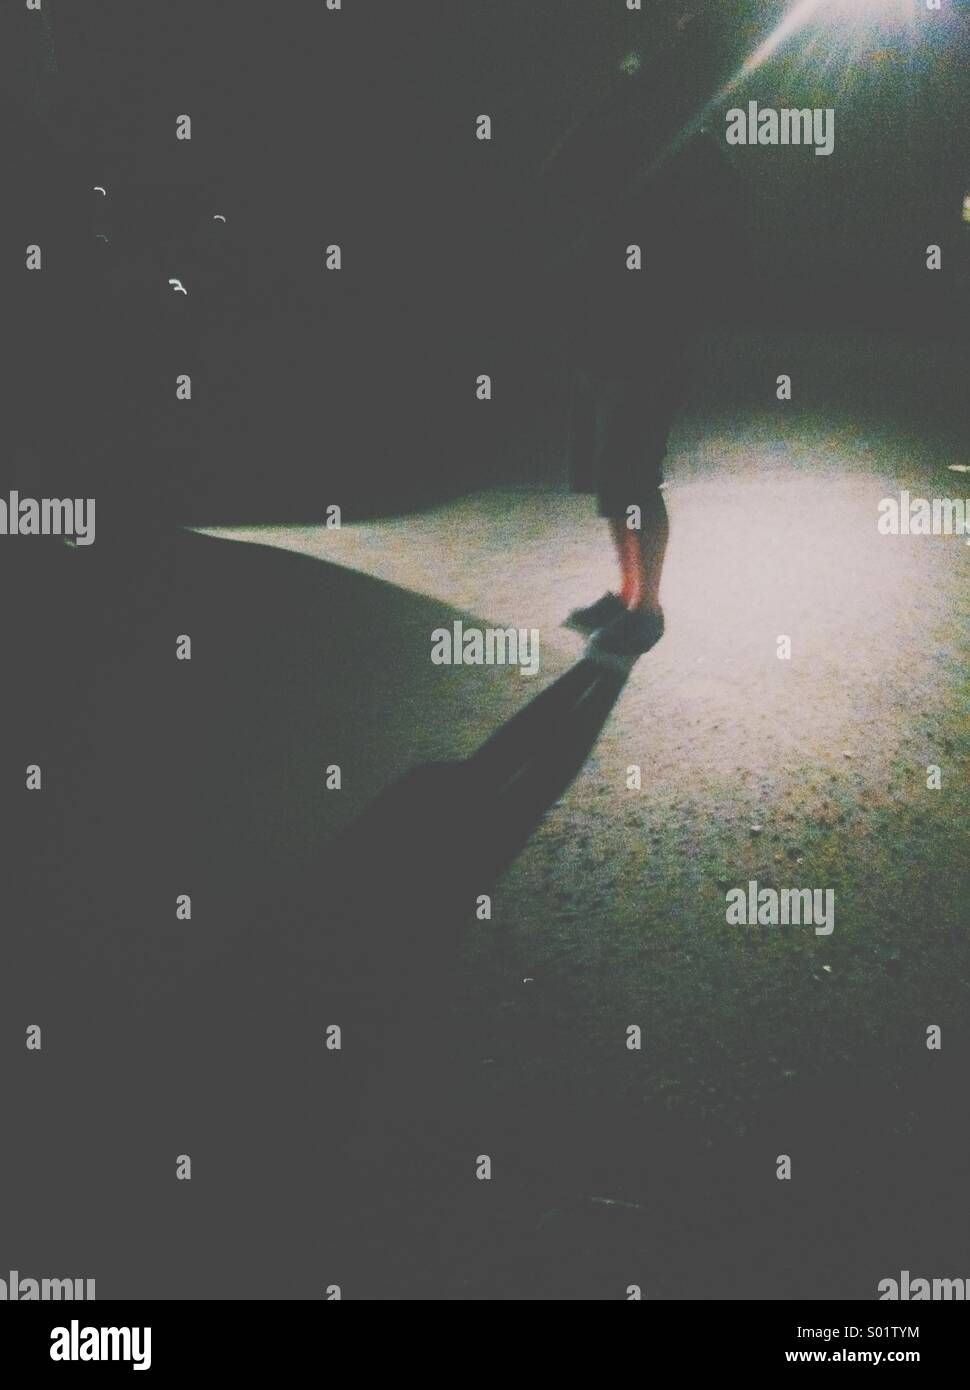 Man standing in shadows - Stock Image